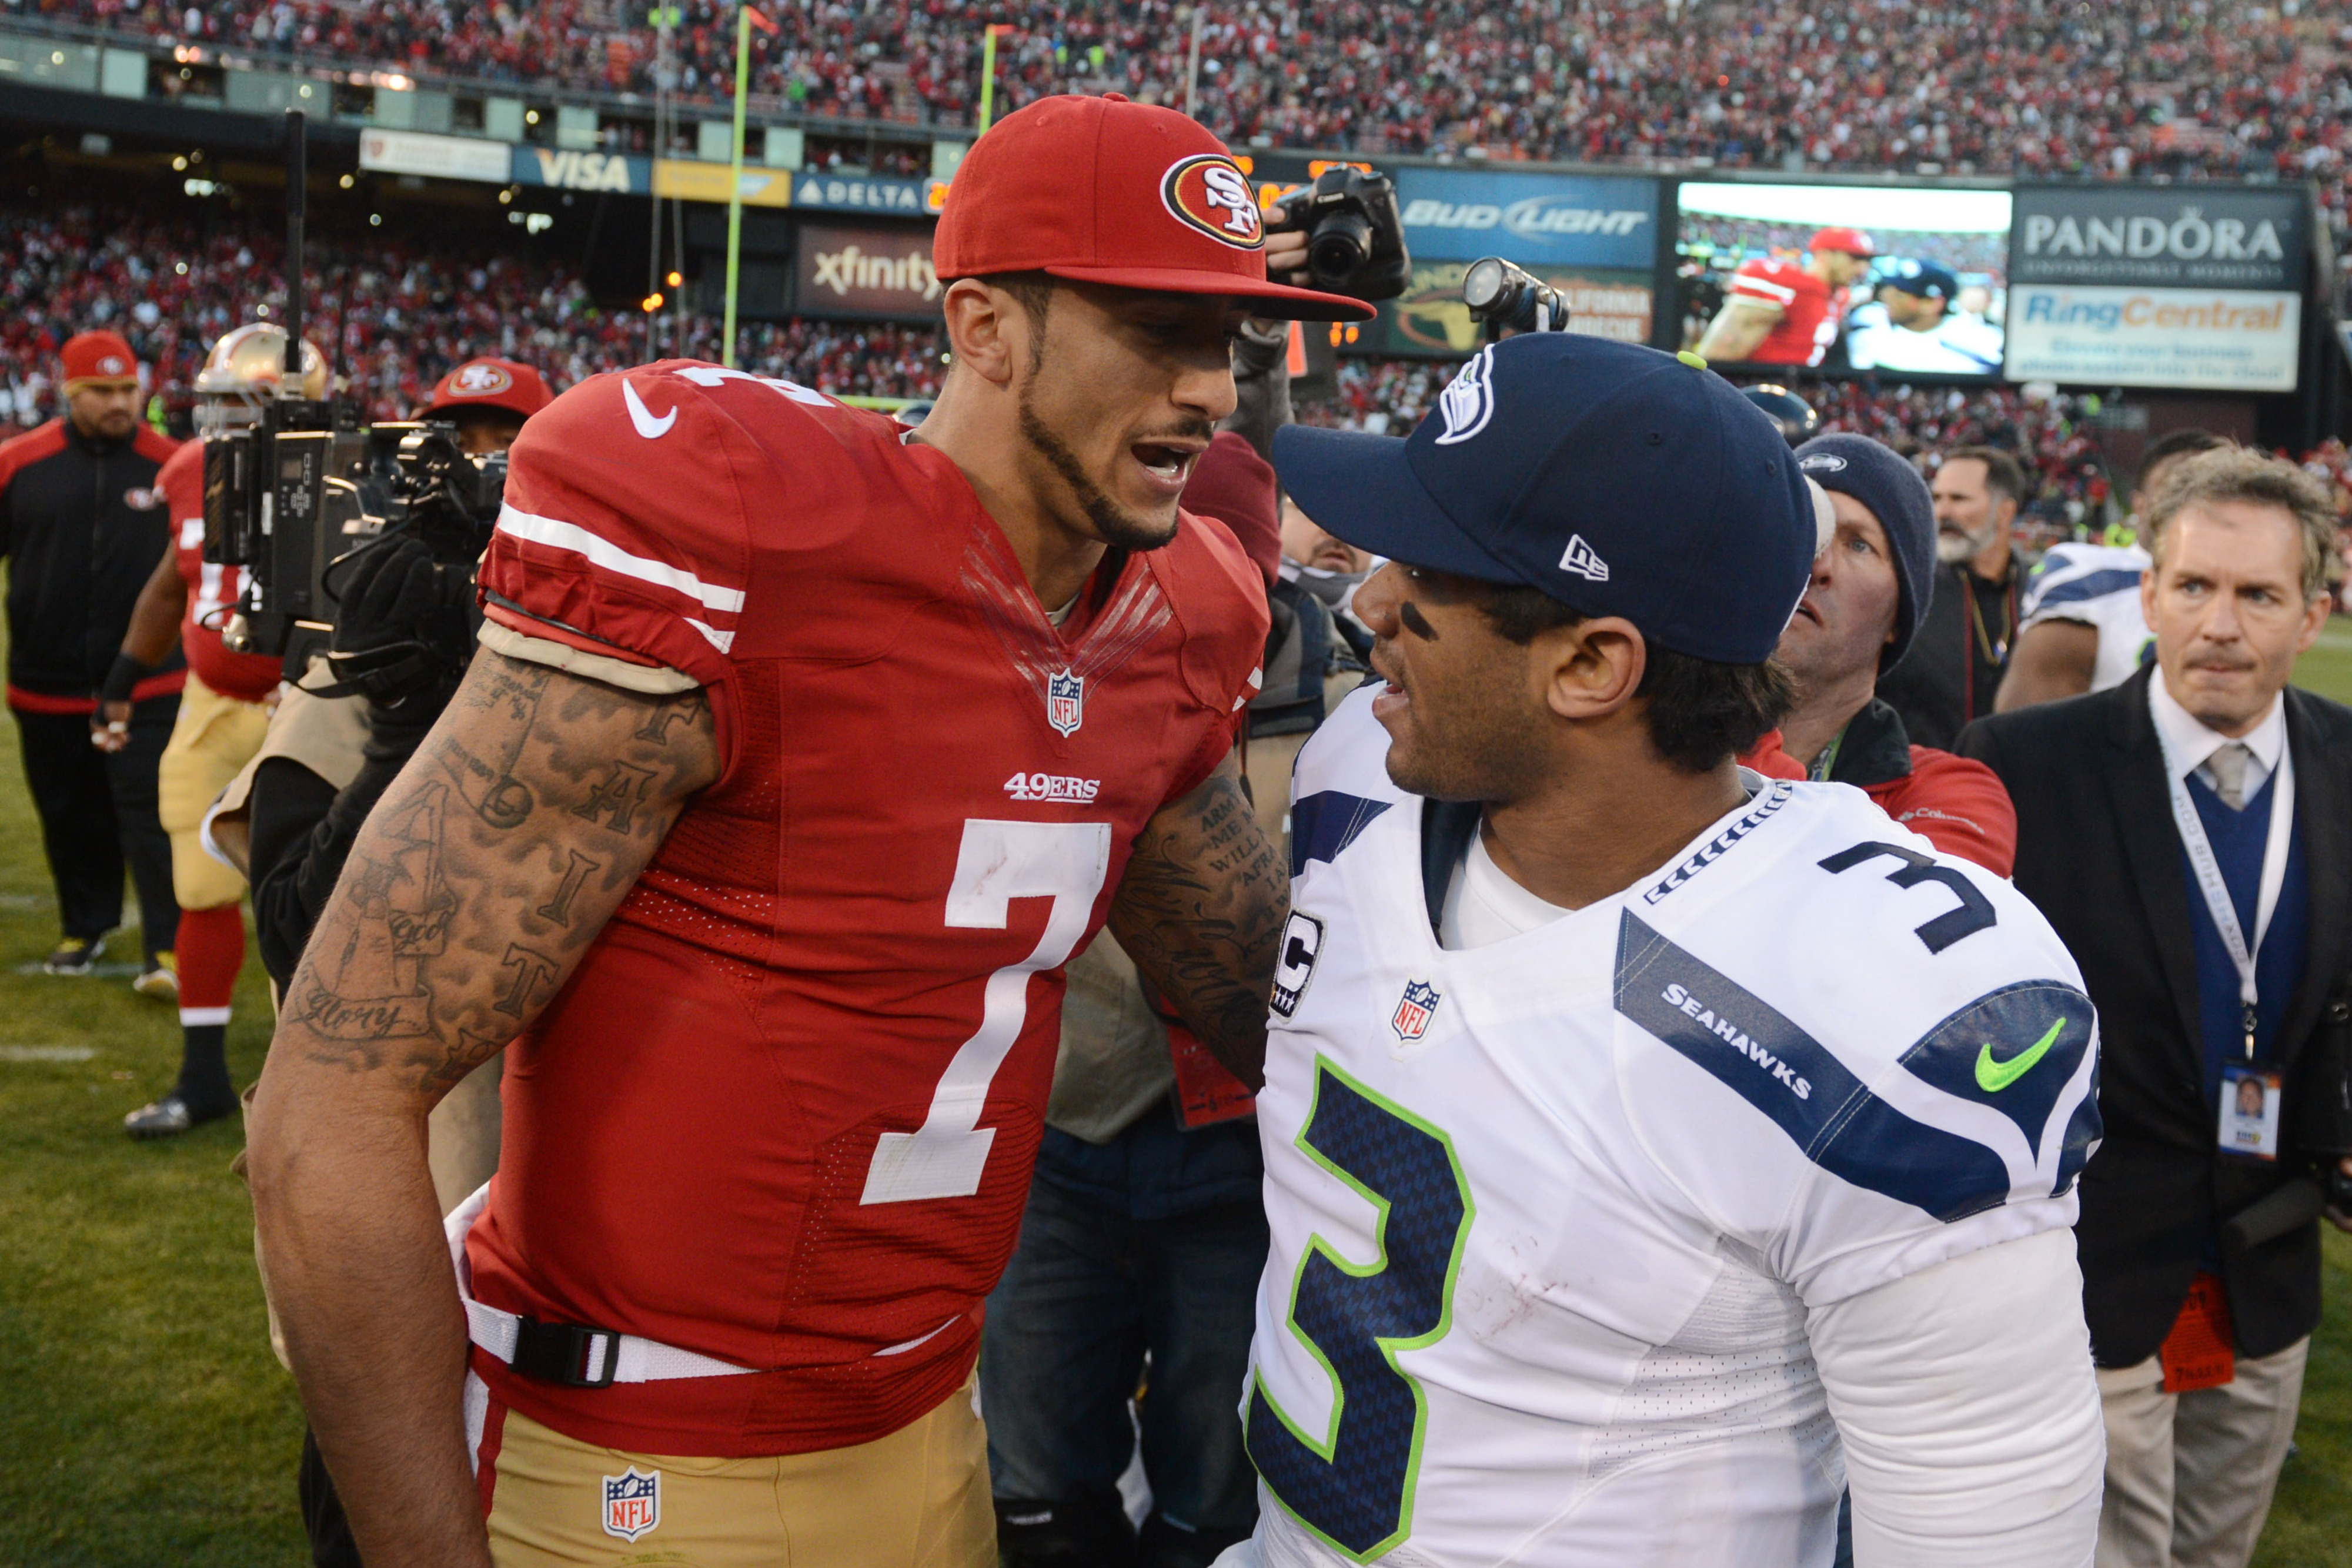 2014 NFC Championship: How the Seahawks, 49ers built winning teams